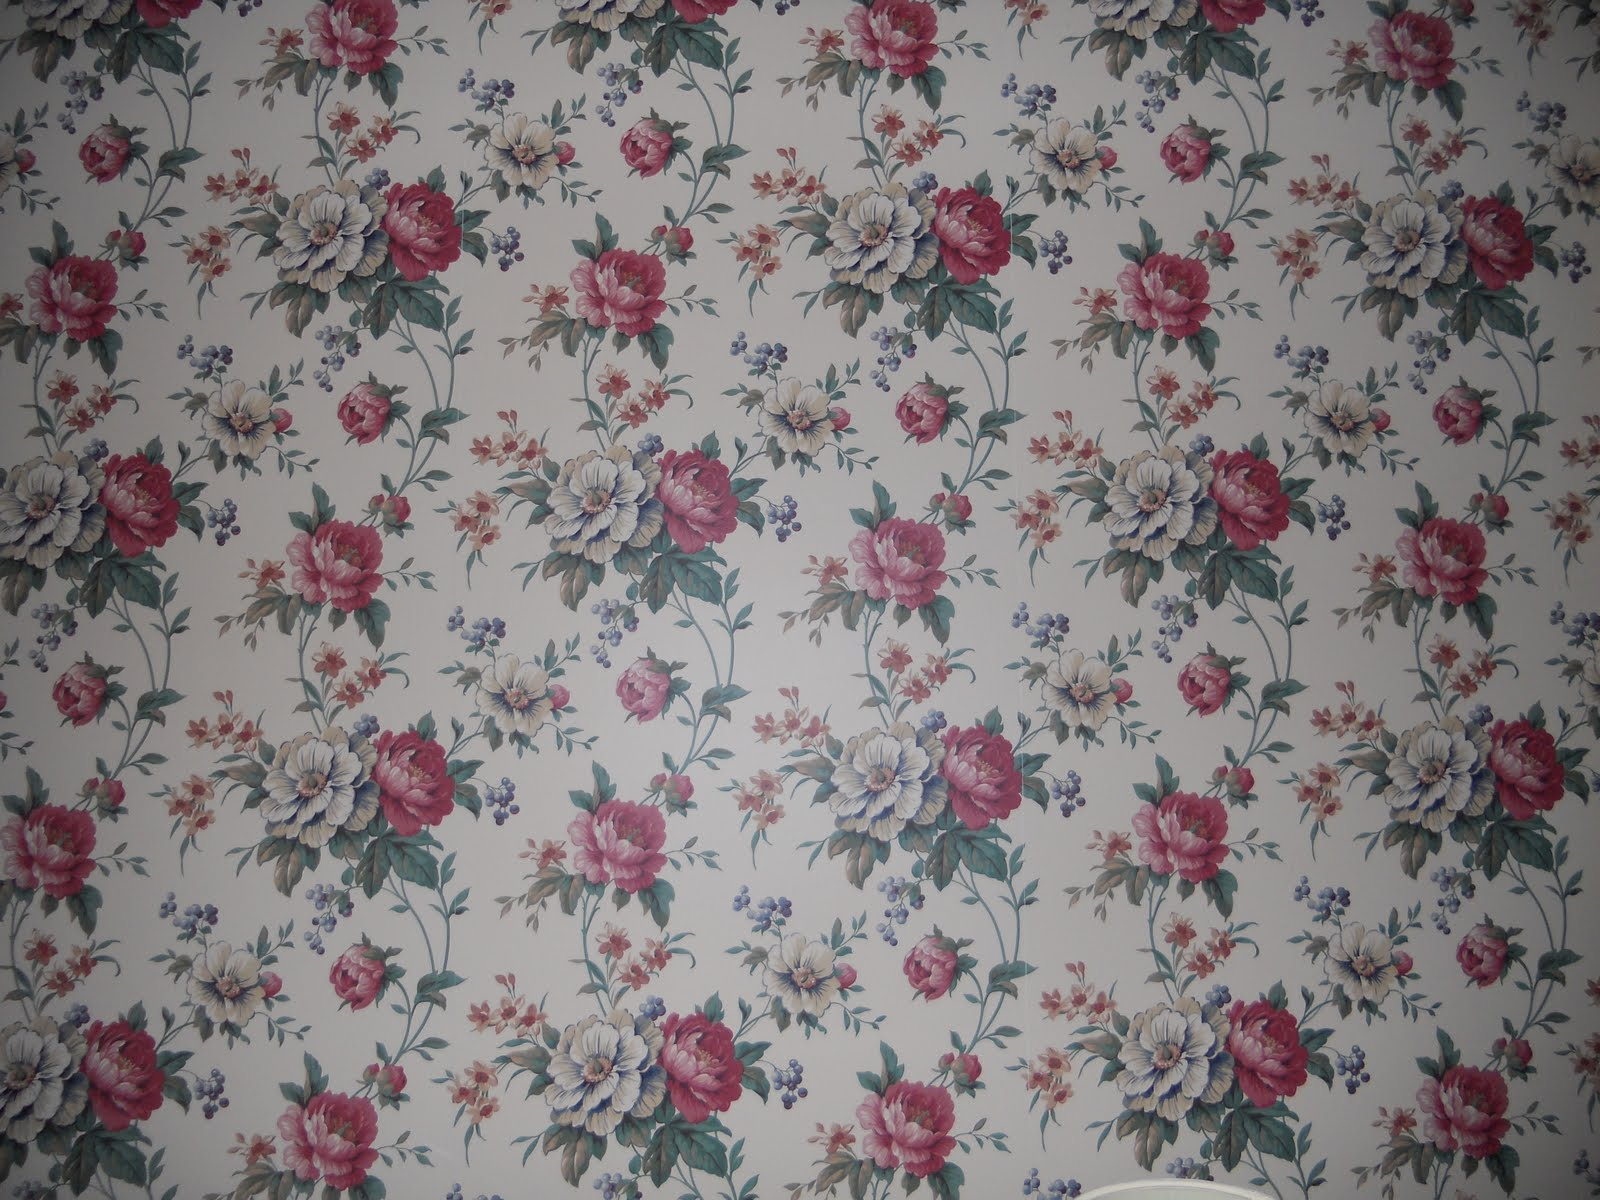 Victorian Floral Wallpaper Patterns Floral wallpaper pattern 1600x1200